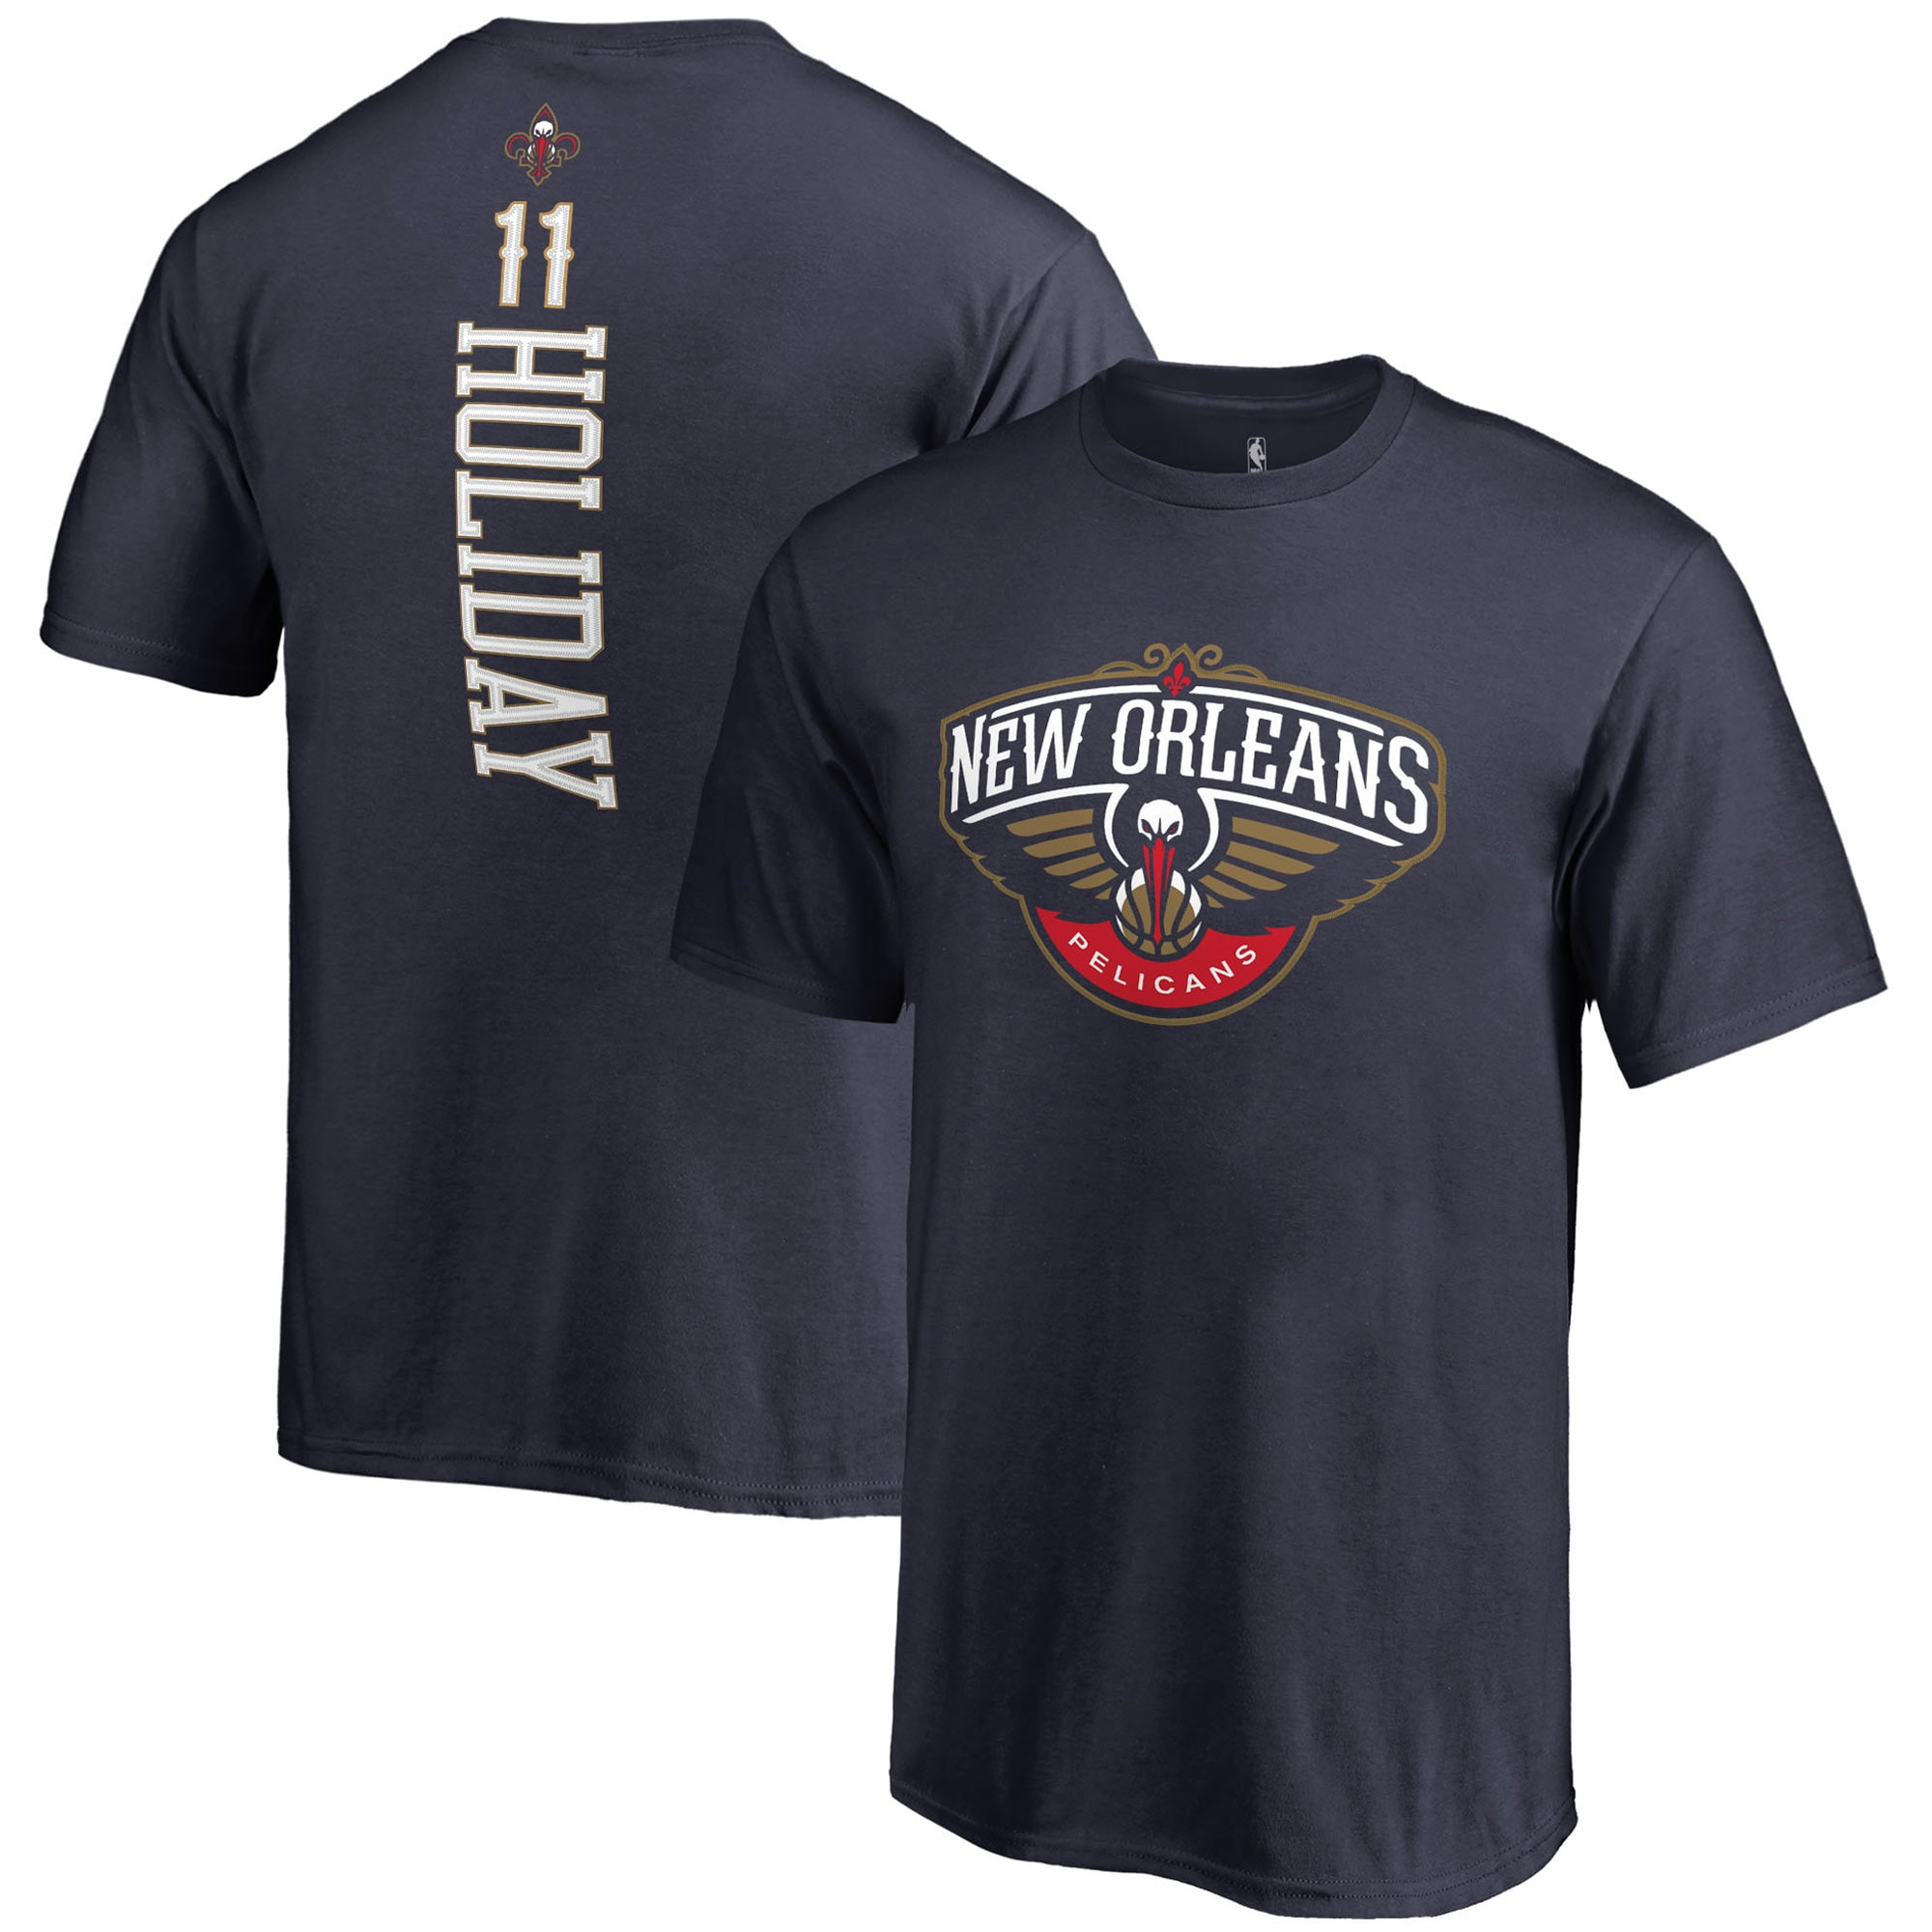 Jrue Holiday New Orleans Pelicans Fanatics Branded Youth Backer Name and Number T-Shirt - Navy